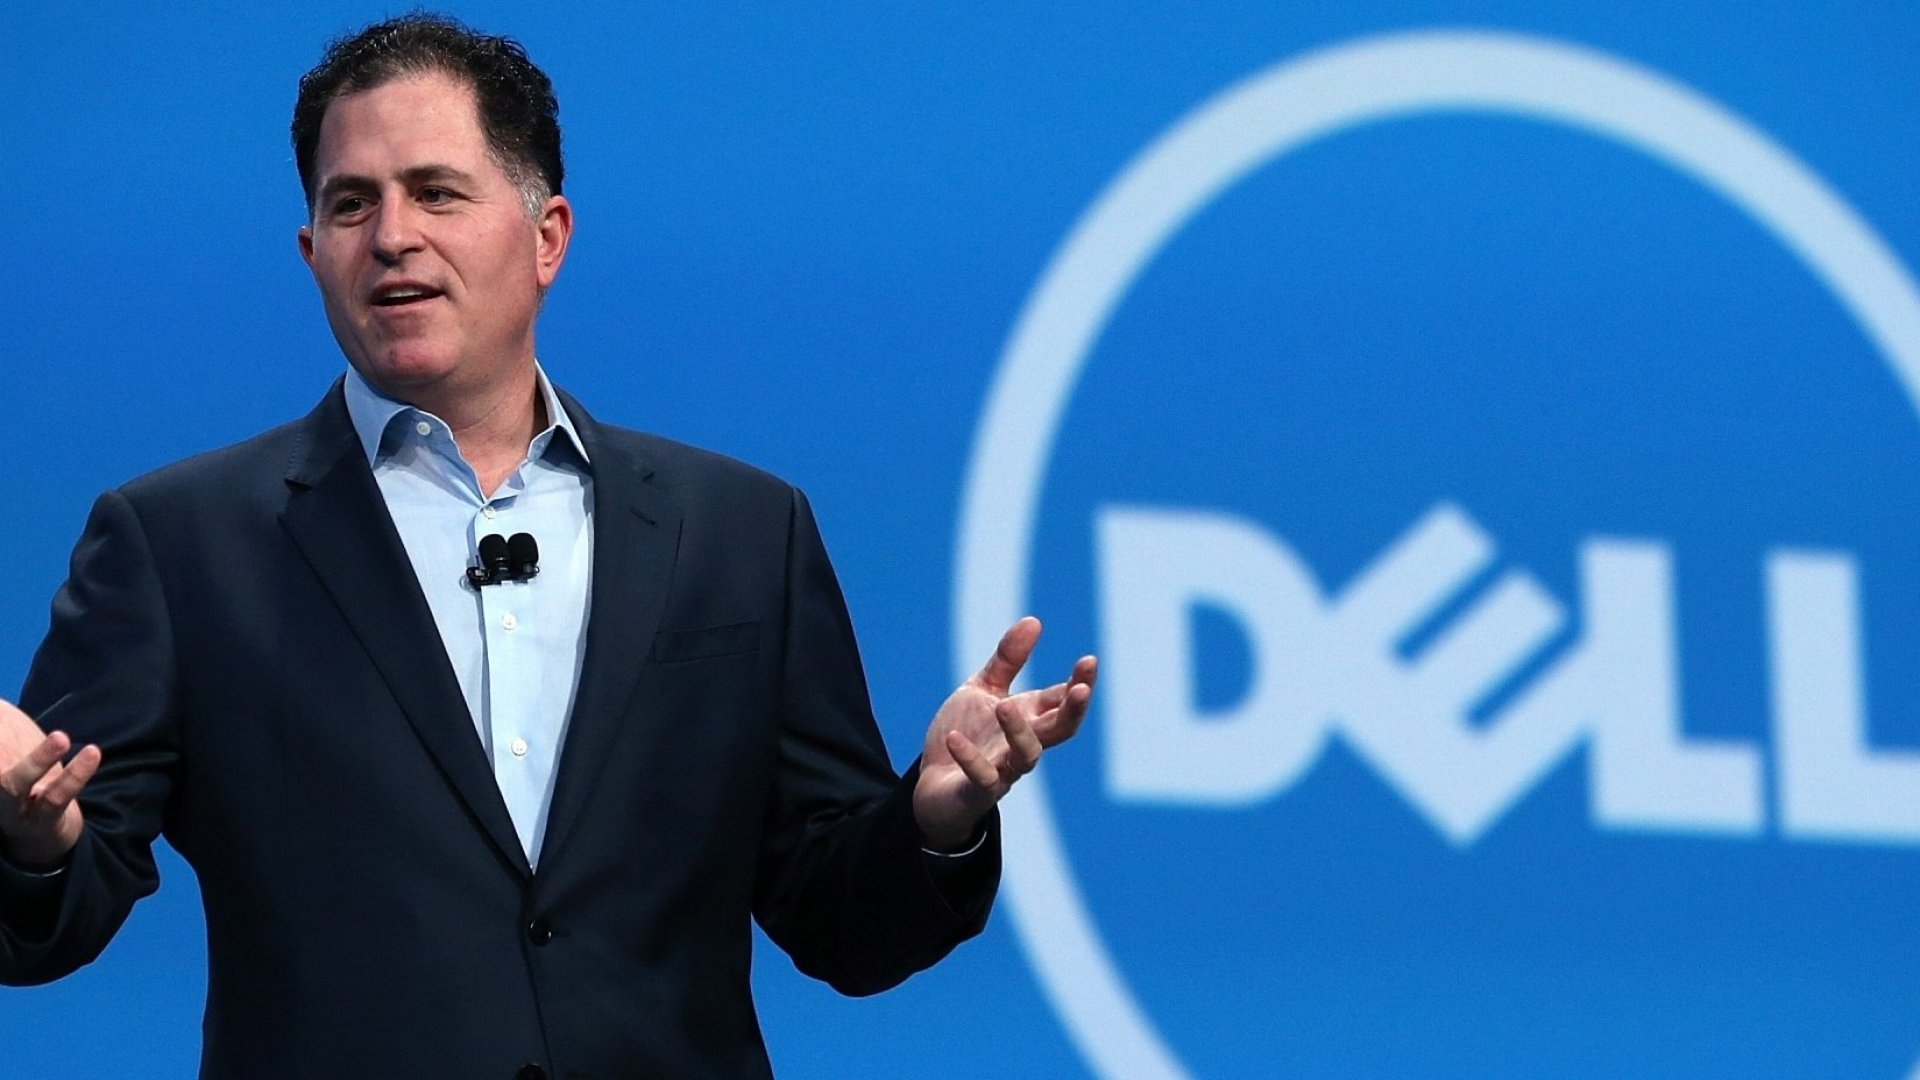 5 Years After $24.4 Billion Deal to Go Private, Dell Will Become a Public Company Again